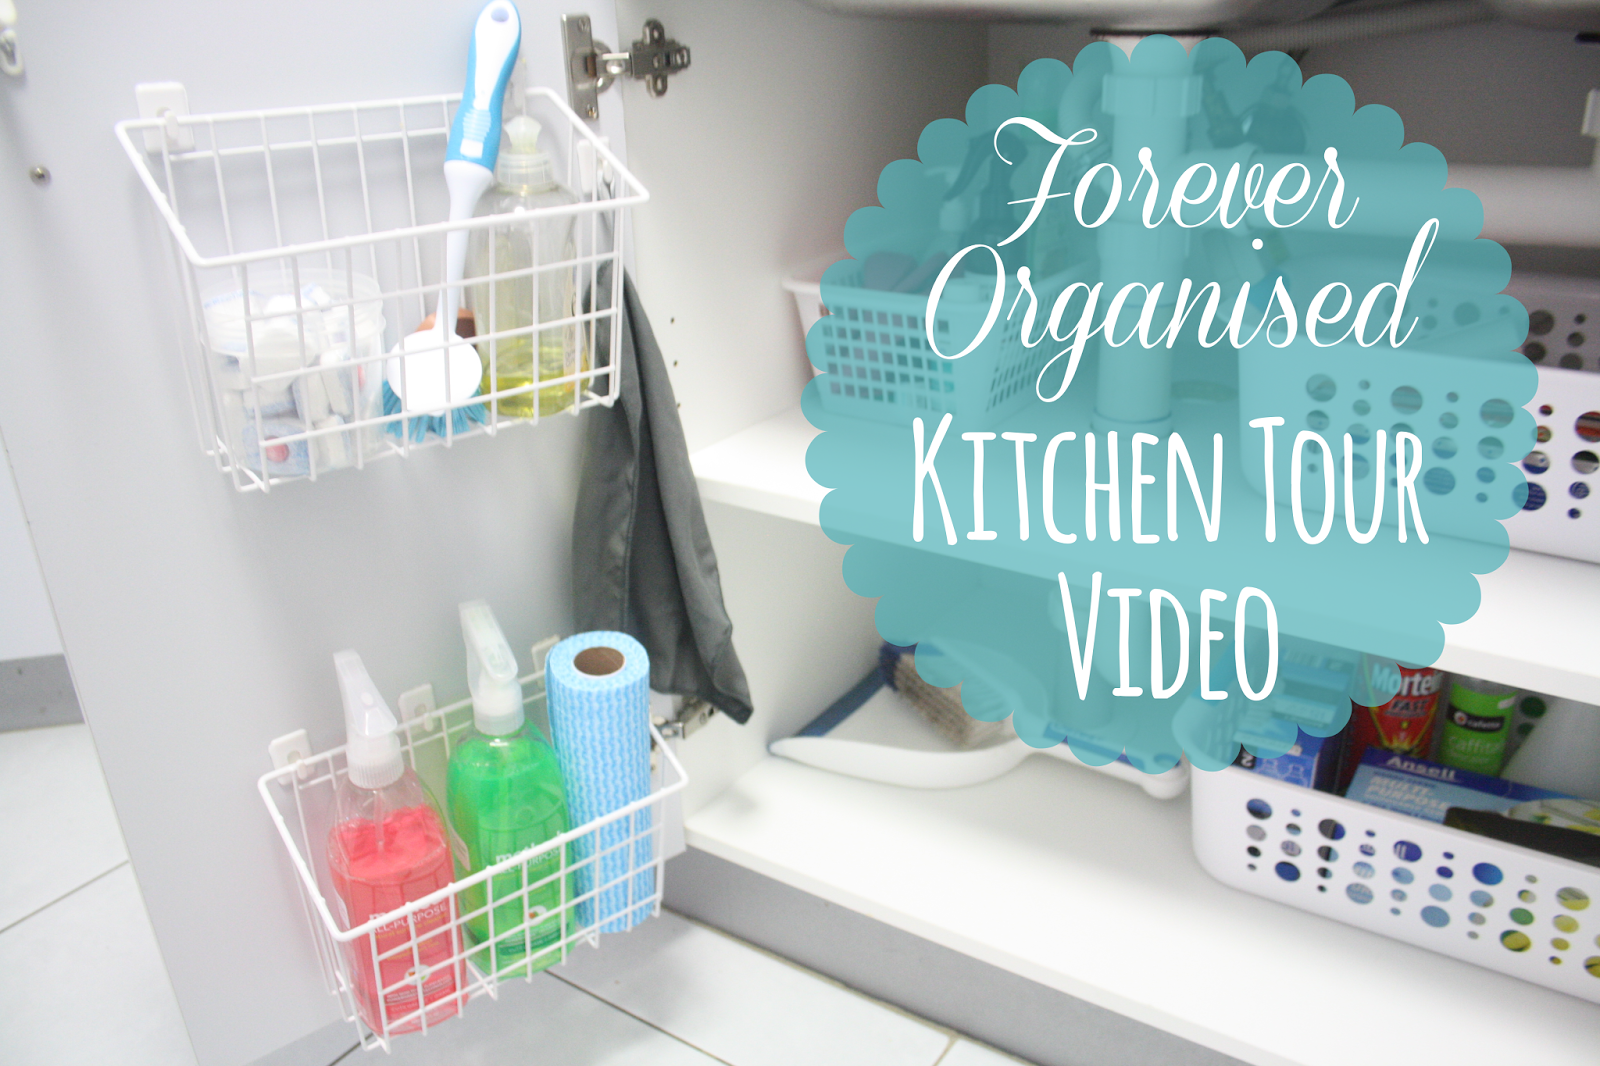 Kitchen Tour Video - Part 2 - www.foreverorganised.com   Organise ...